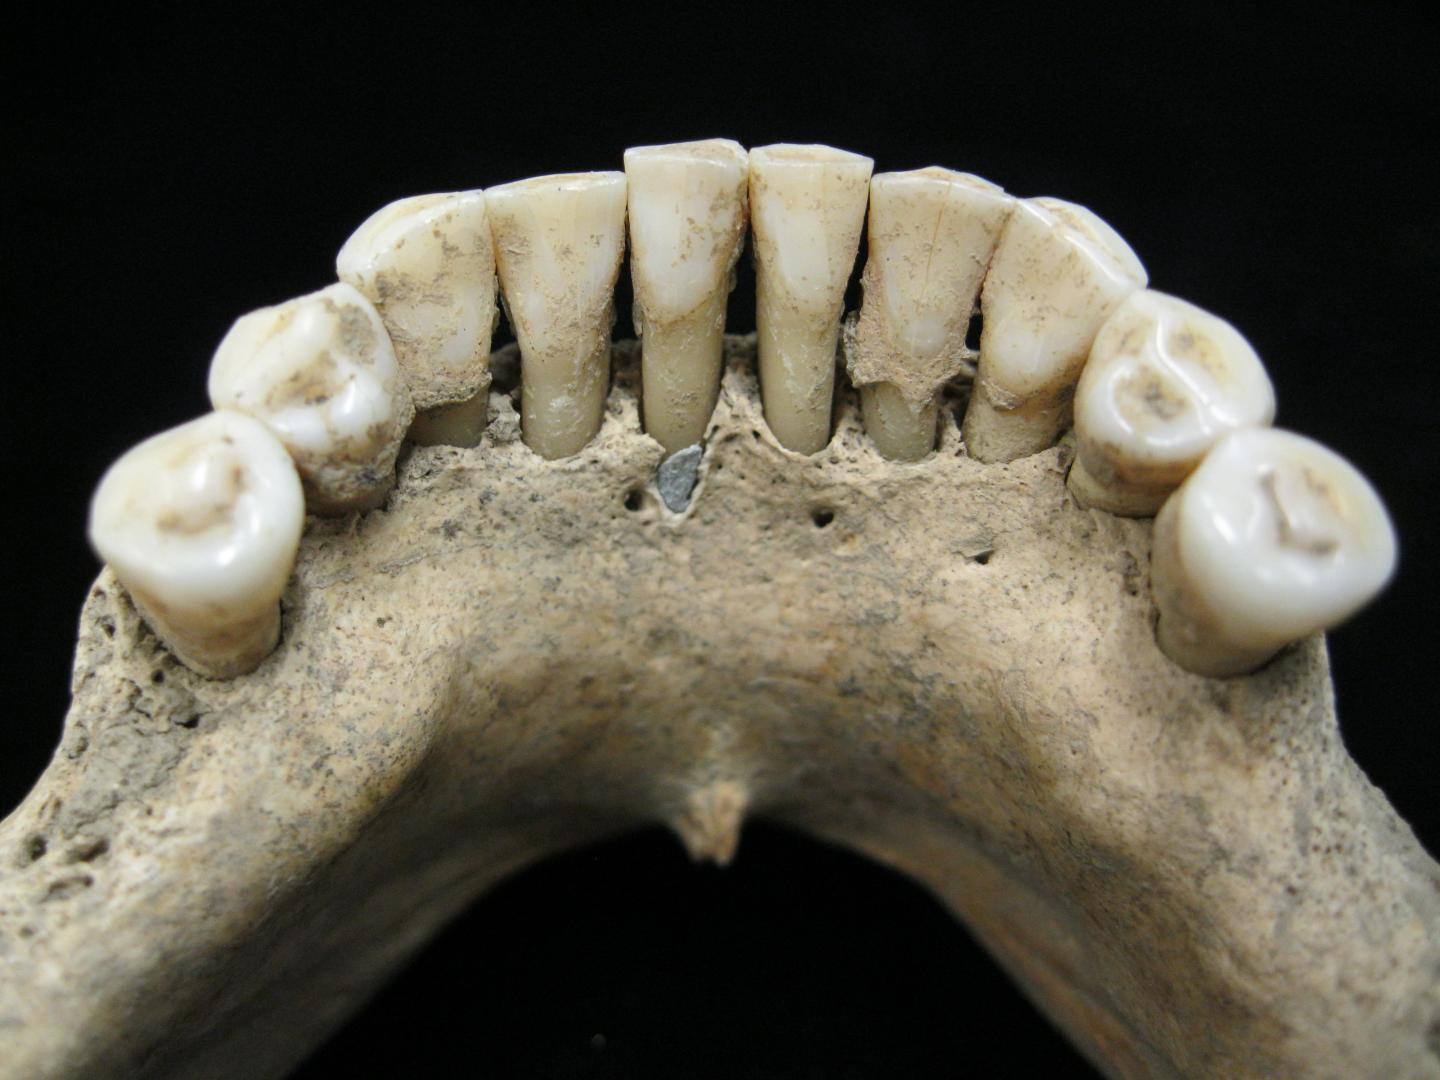 Dental calculus jaw and teeth photo